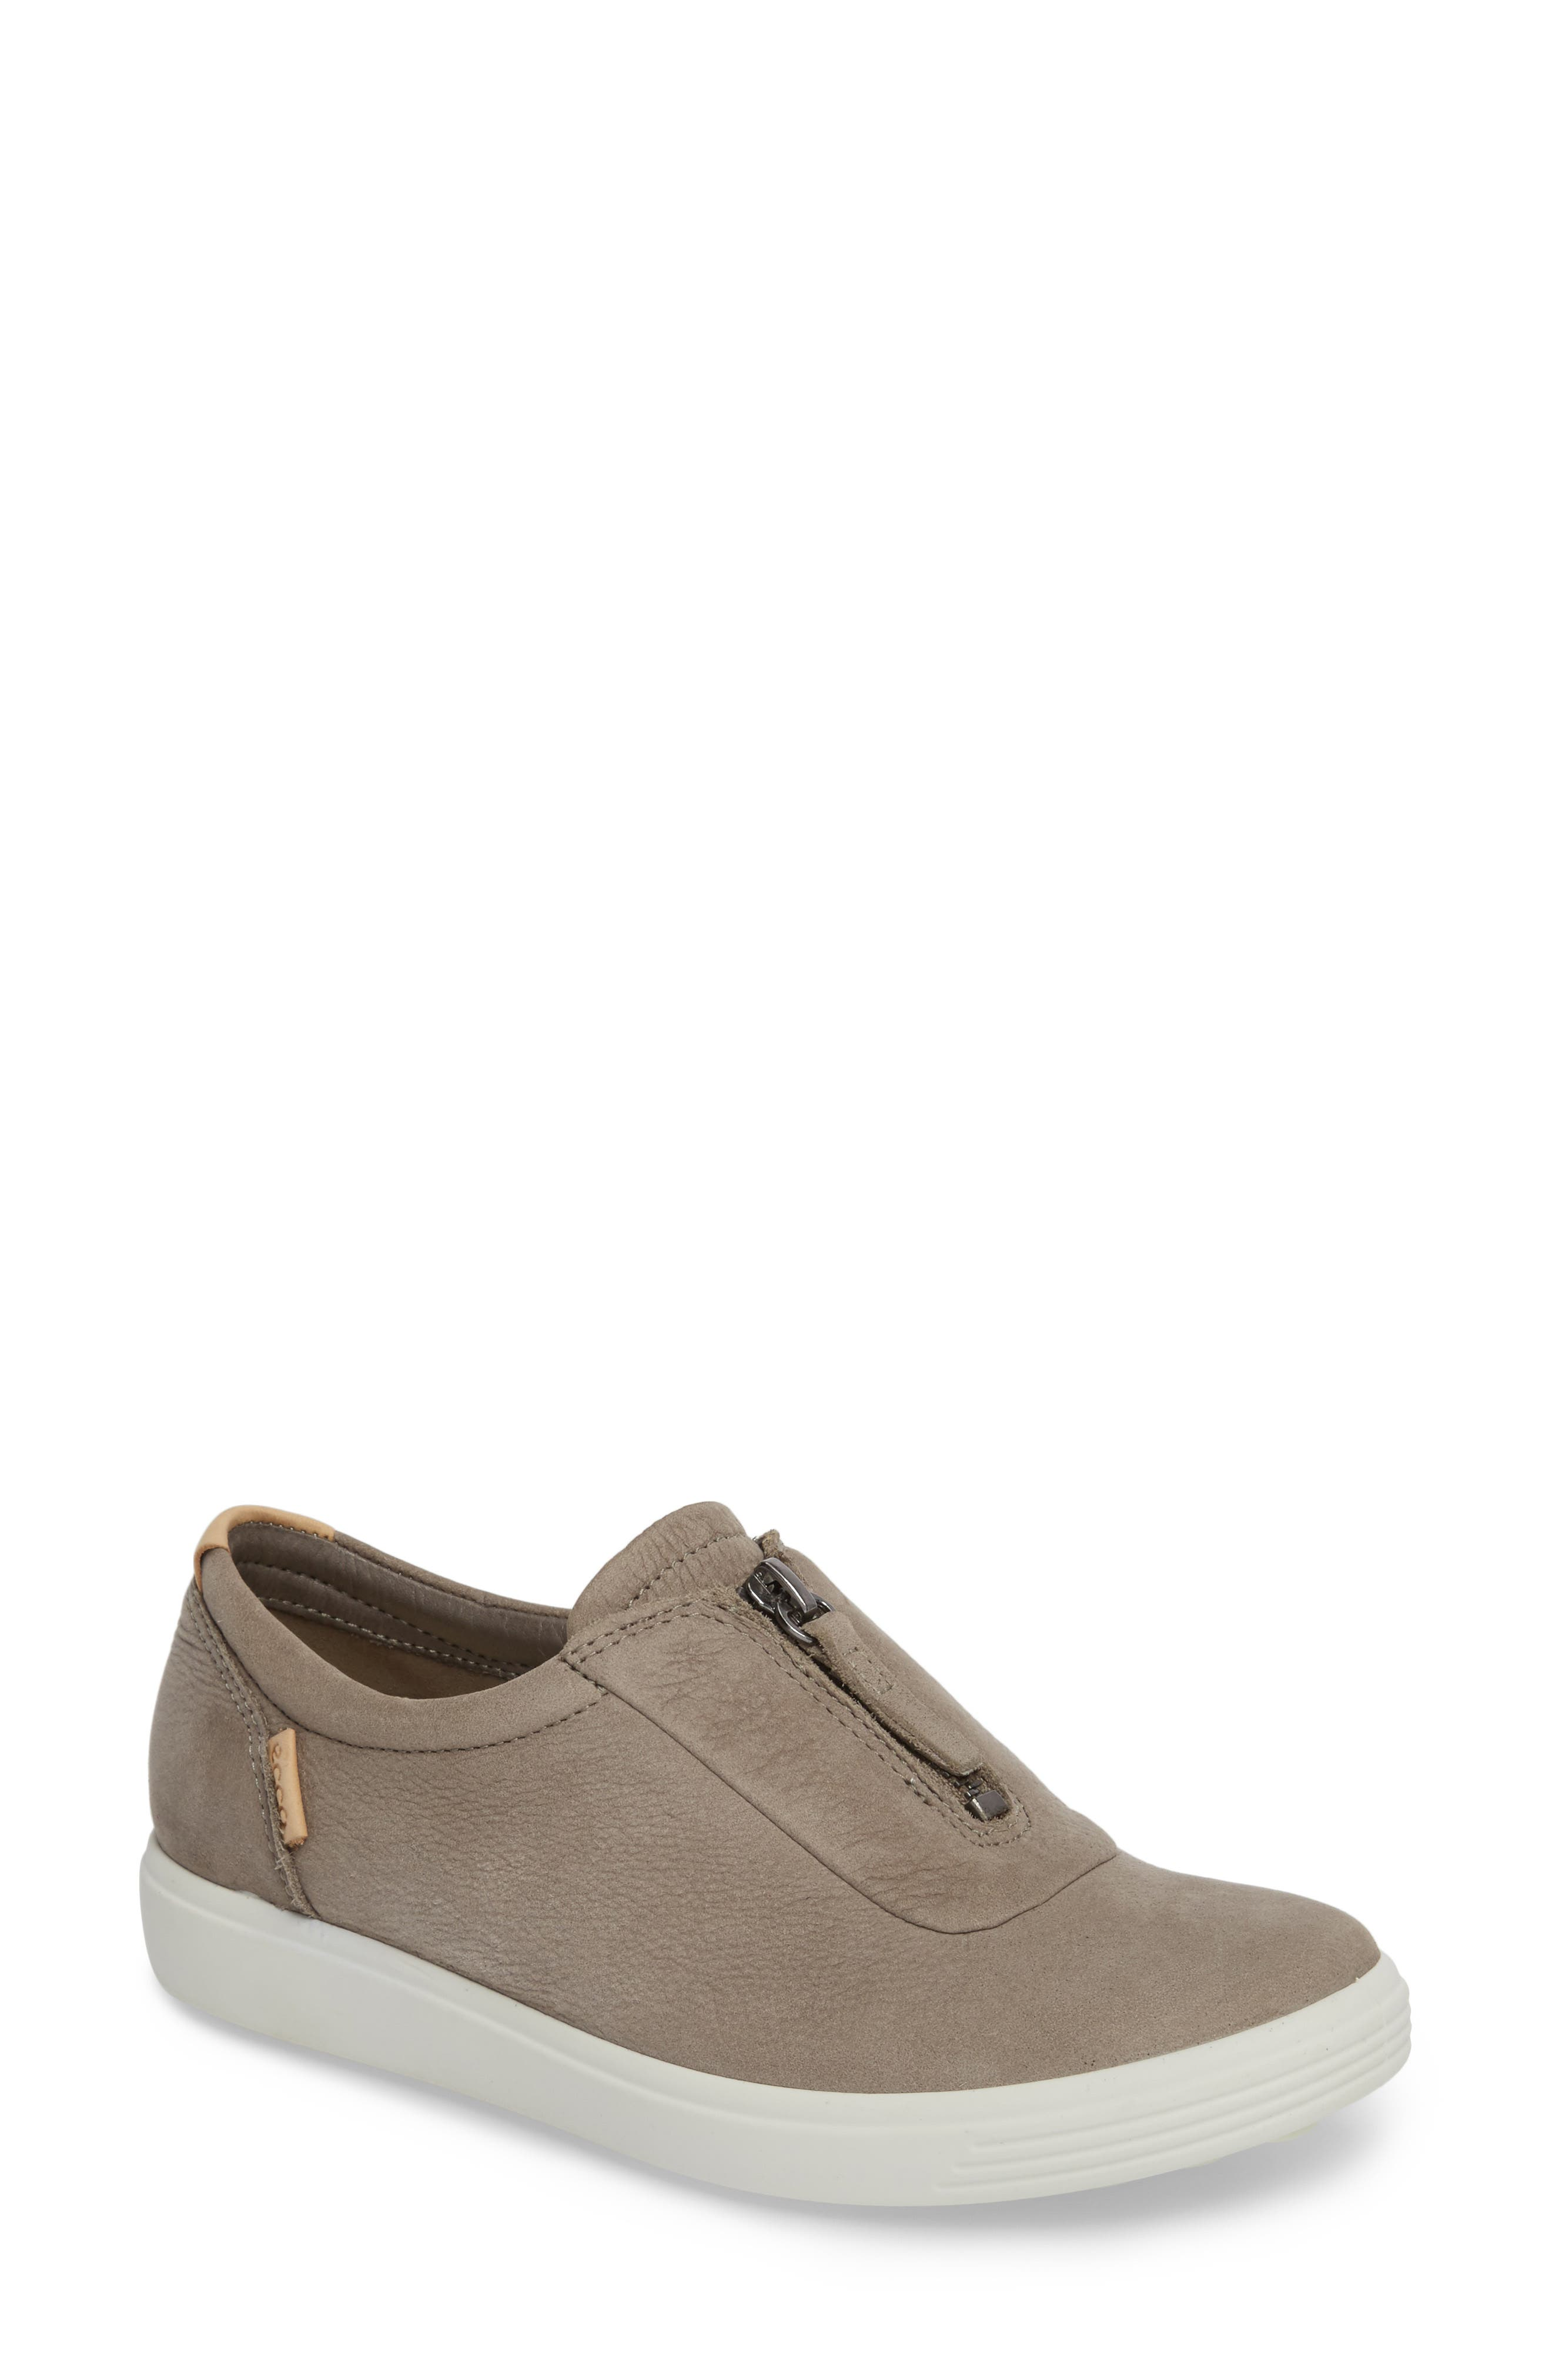 Soft 7 Slip-On Sneaker,                         Main,                         color, WARM GREY LEATHER